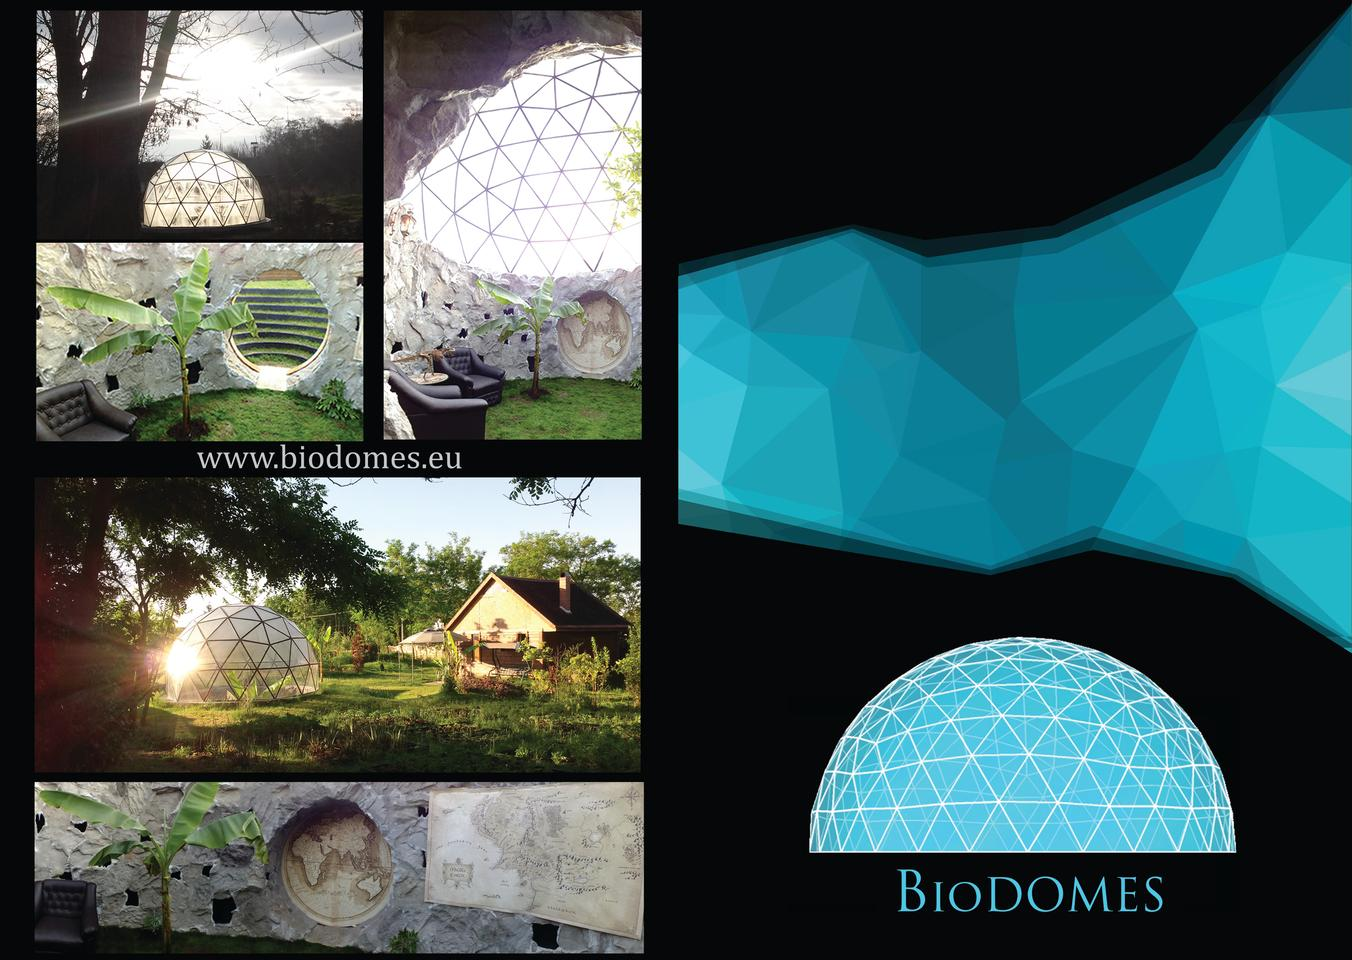 Delivery for the Biodomes isavailable for the entire European Union